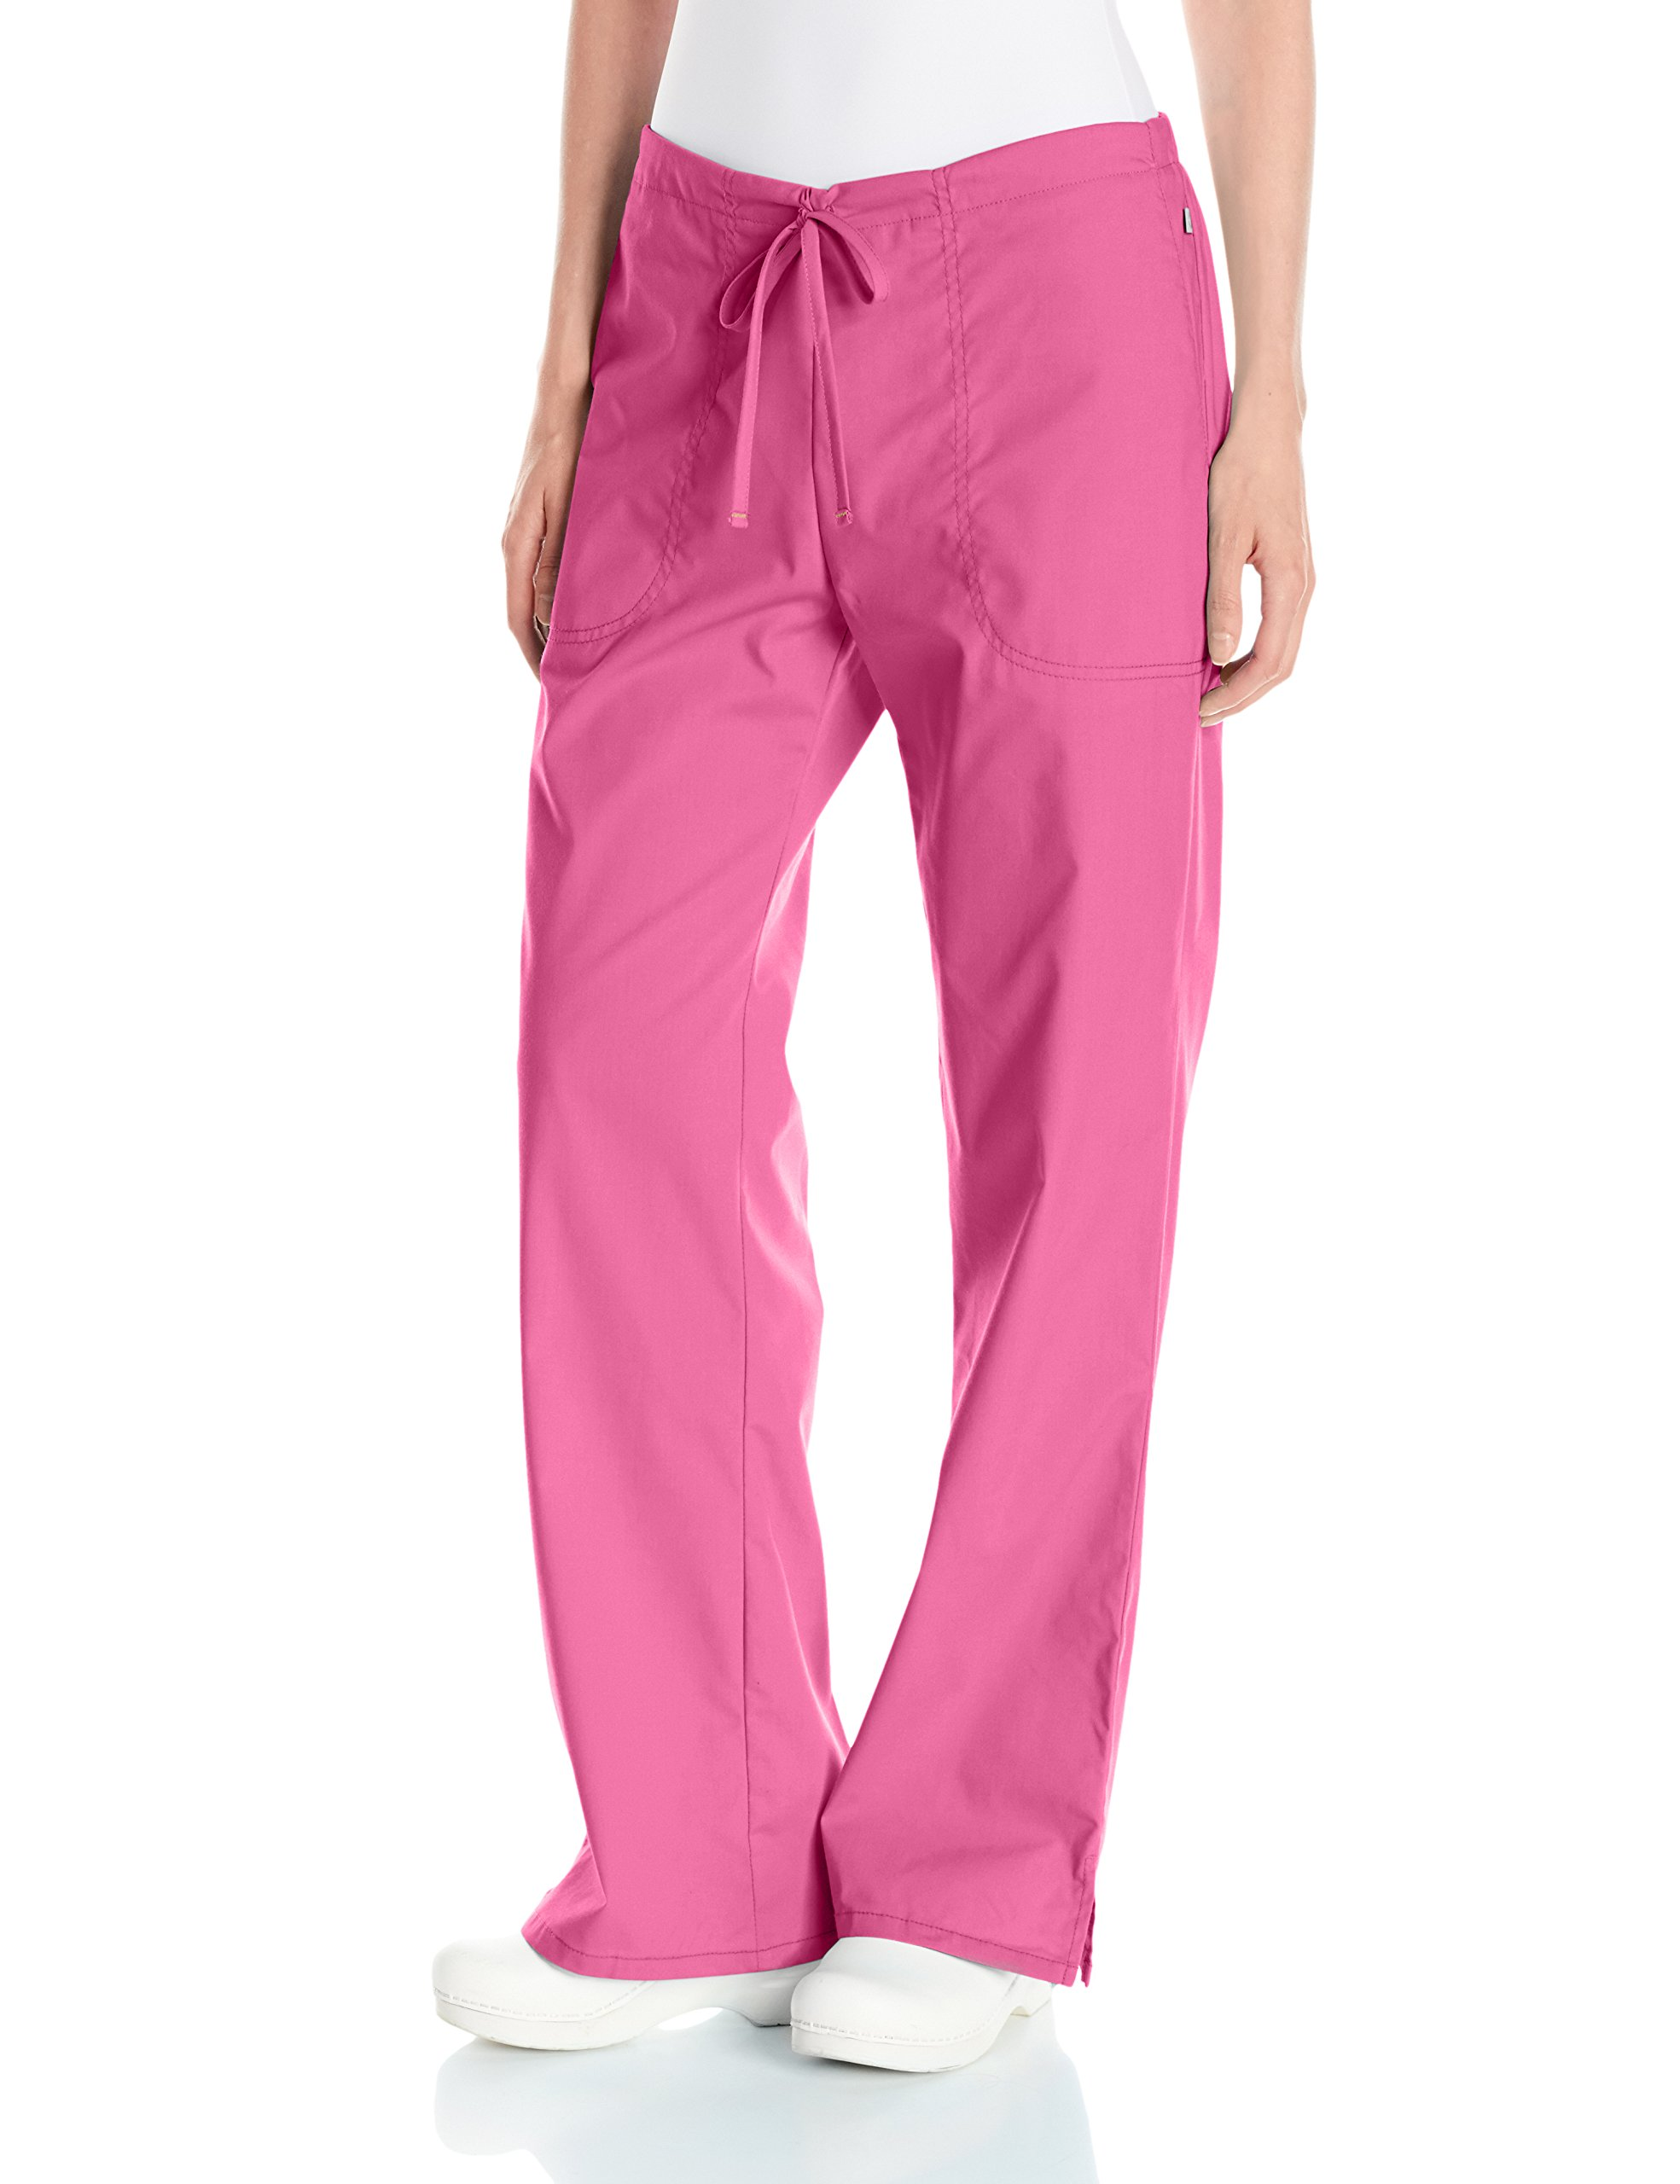 Code Happy Women's Bliss Mid-Rise Moderate Flare Drawstring Pant with Certainty, Shocking Pink, Small Petite